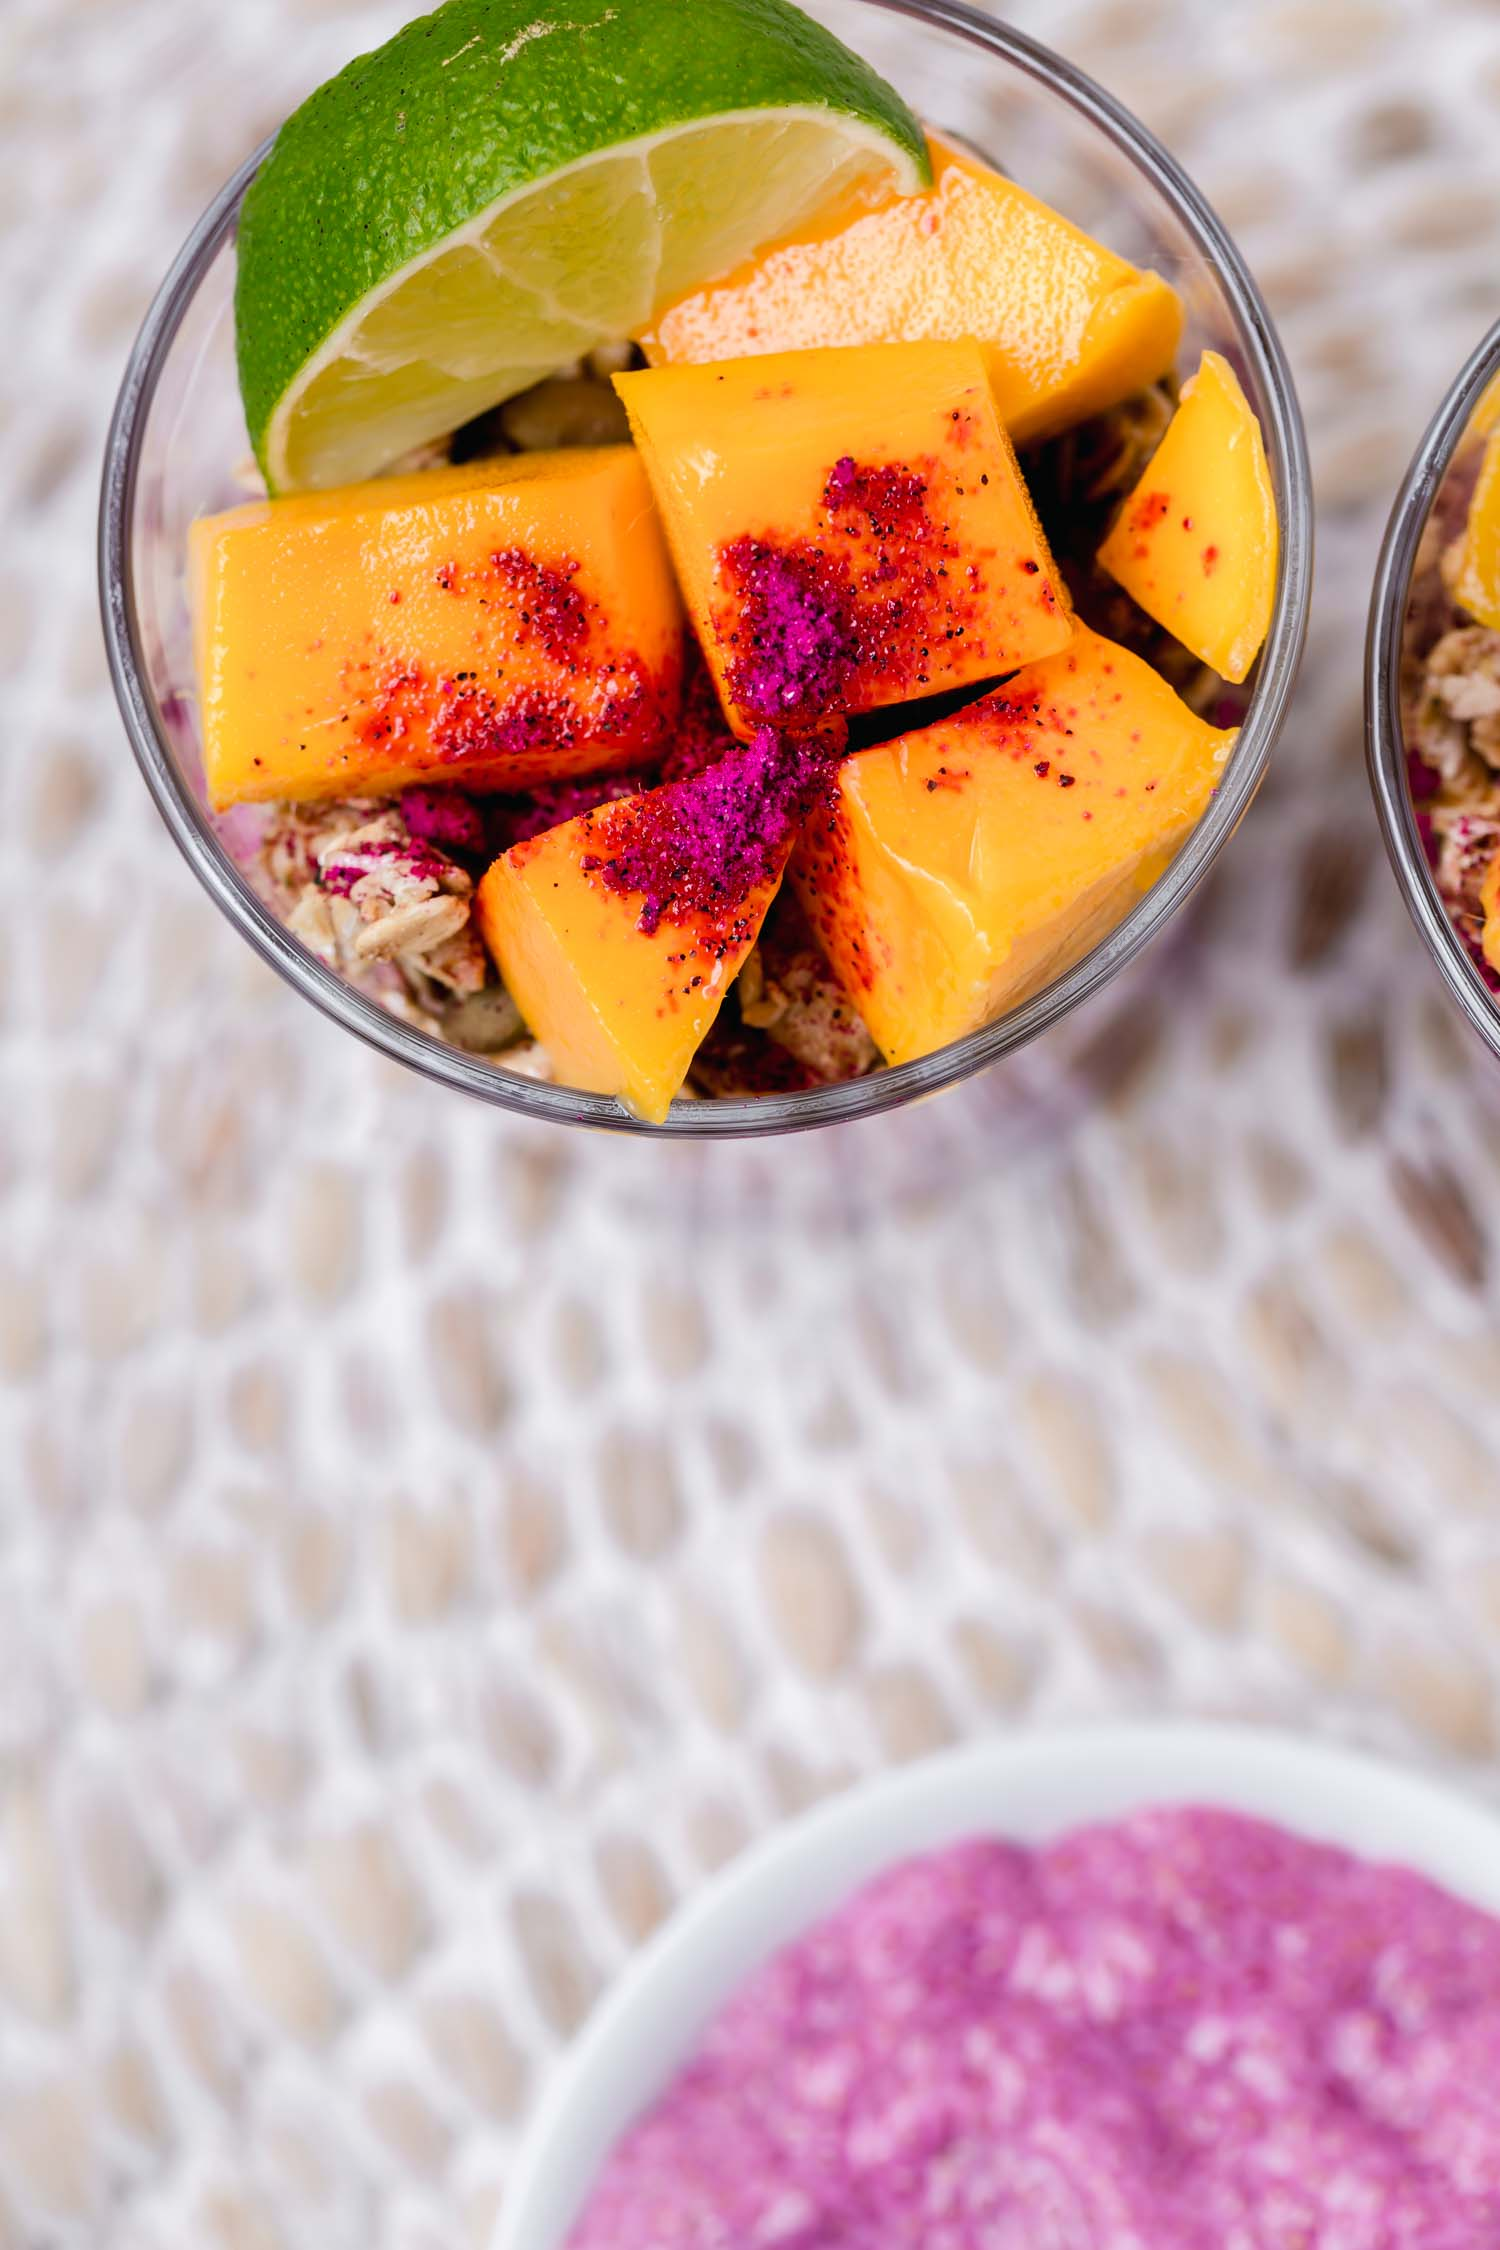 Tropical Dragon Fruit Chia Pudding Breakfast Bowls or Parfaits, so easy to make, colorful, and a real summer treat! #chiapudding #chiapuddingparfait #breakfastbowl #breakfast #vegan #veganbreakfast #veganrecipe #tropicalrecipe #tropicalveganrecipe #summerrecipe #dragonfruit #pitaya #tropicalbowl